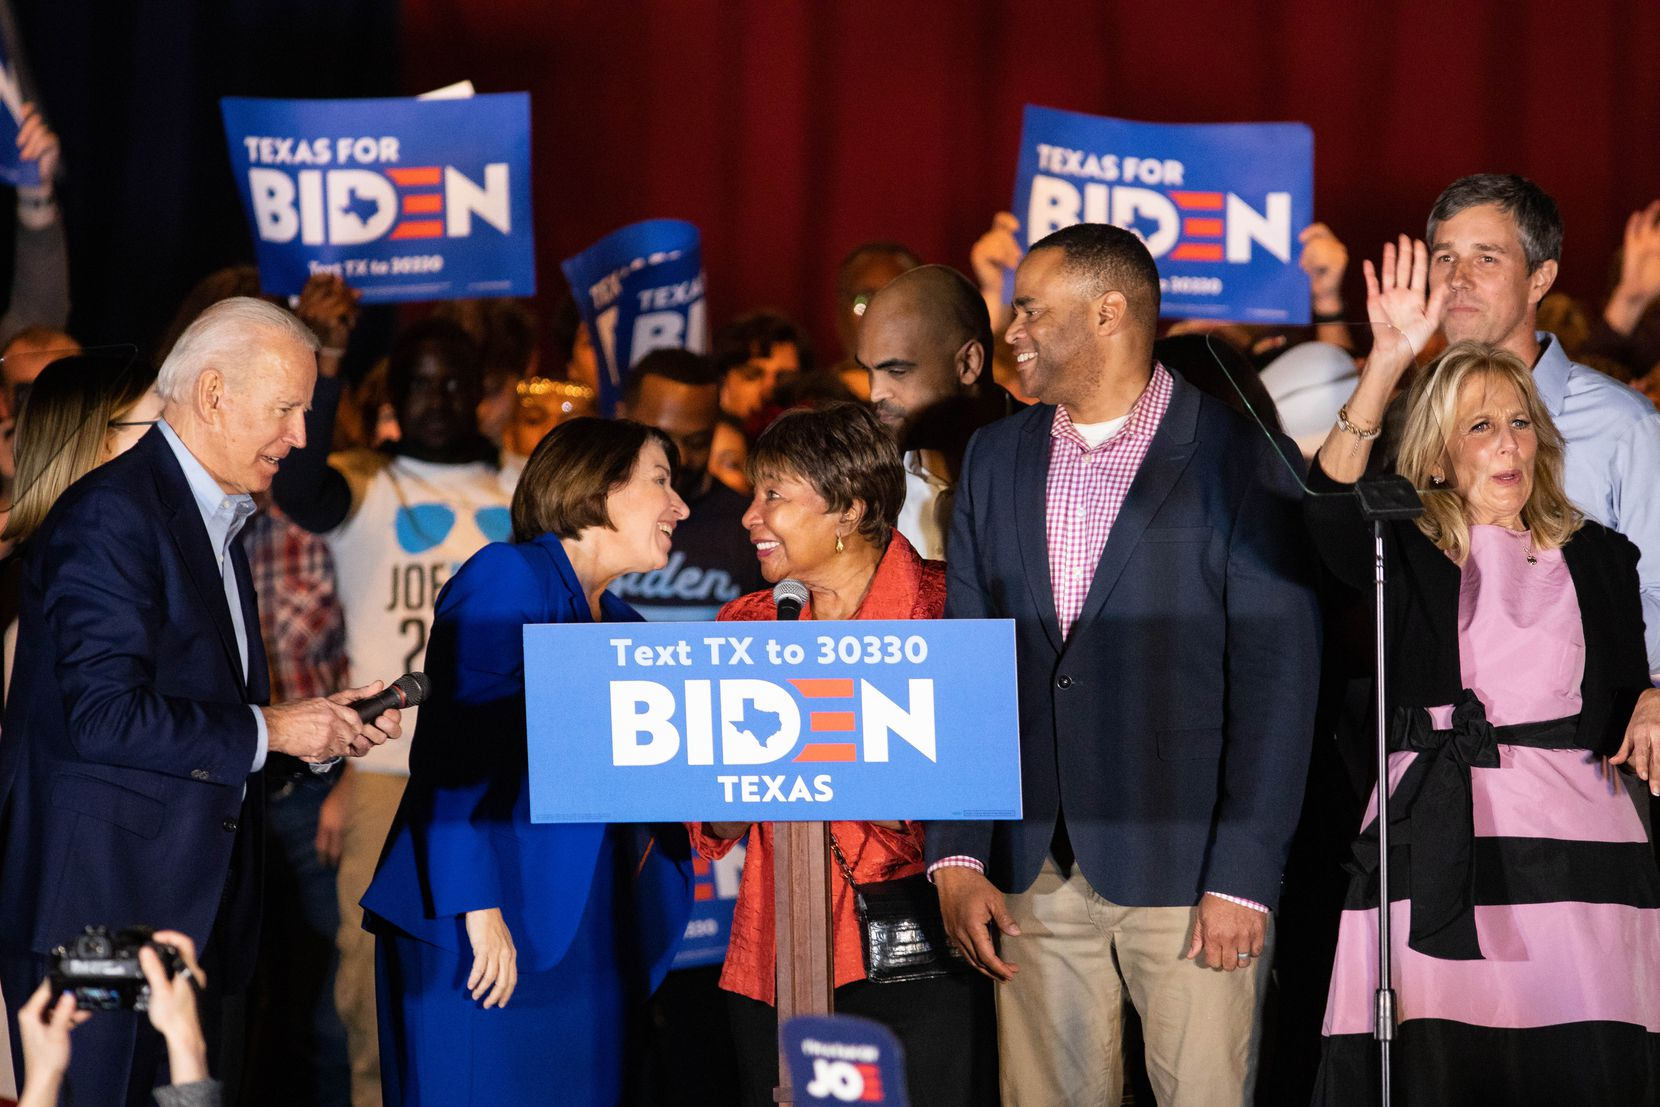 Democratic presidential primary candidate Joe Biden (far left) is endored by (from left) Sen. Amy Klobuchar (D-MN), Rep. Eddie Bernice Johnson (D-Dallas), Rep. Colin Allred (D-Dallas), Rep. Mark Veasey (D-Fort Worth), and former Rep. Beto O'Rourke during a rally held at Gilley's in Dallas on March. 2, 2020.